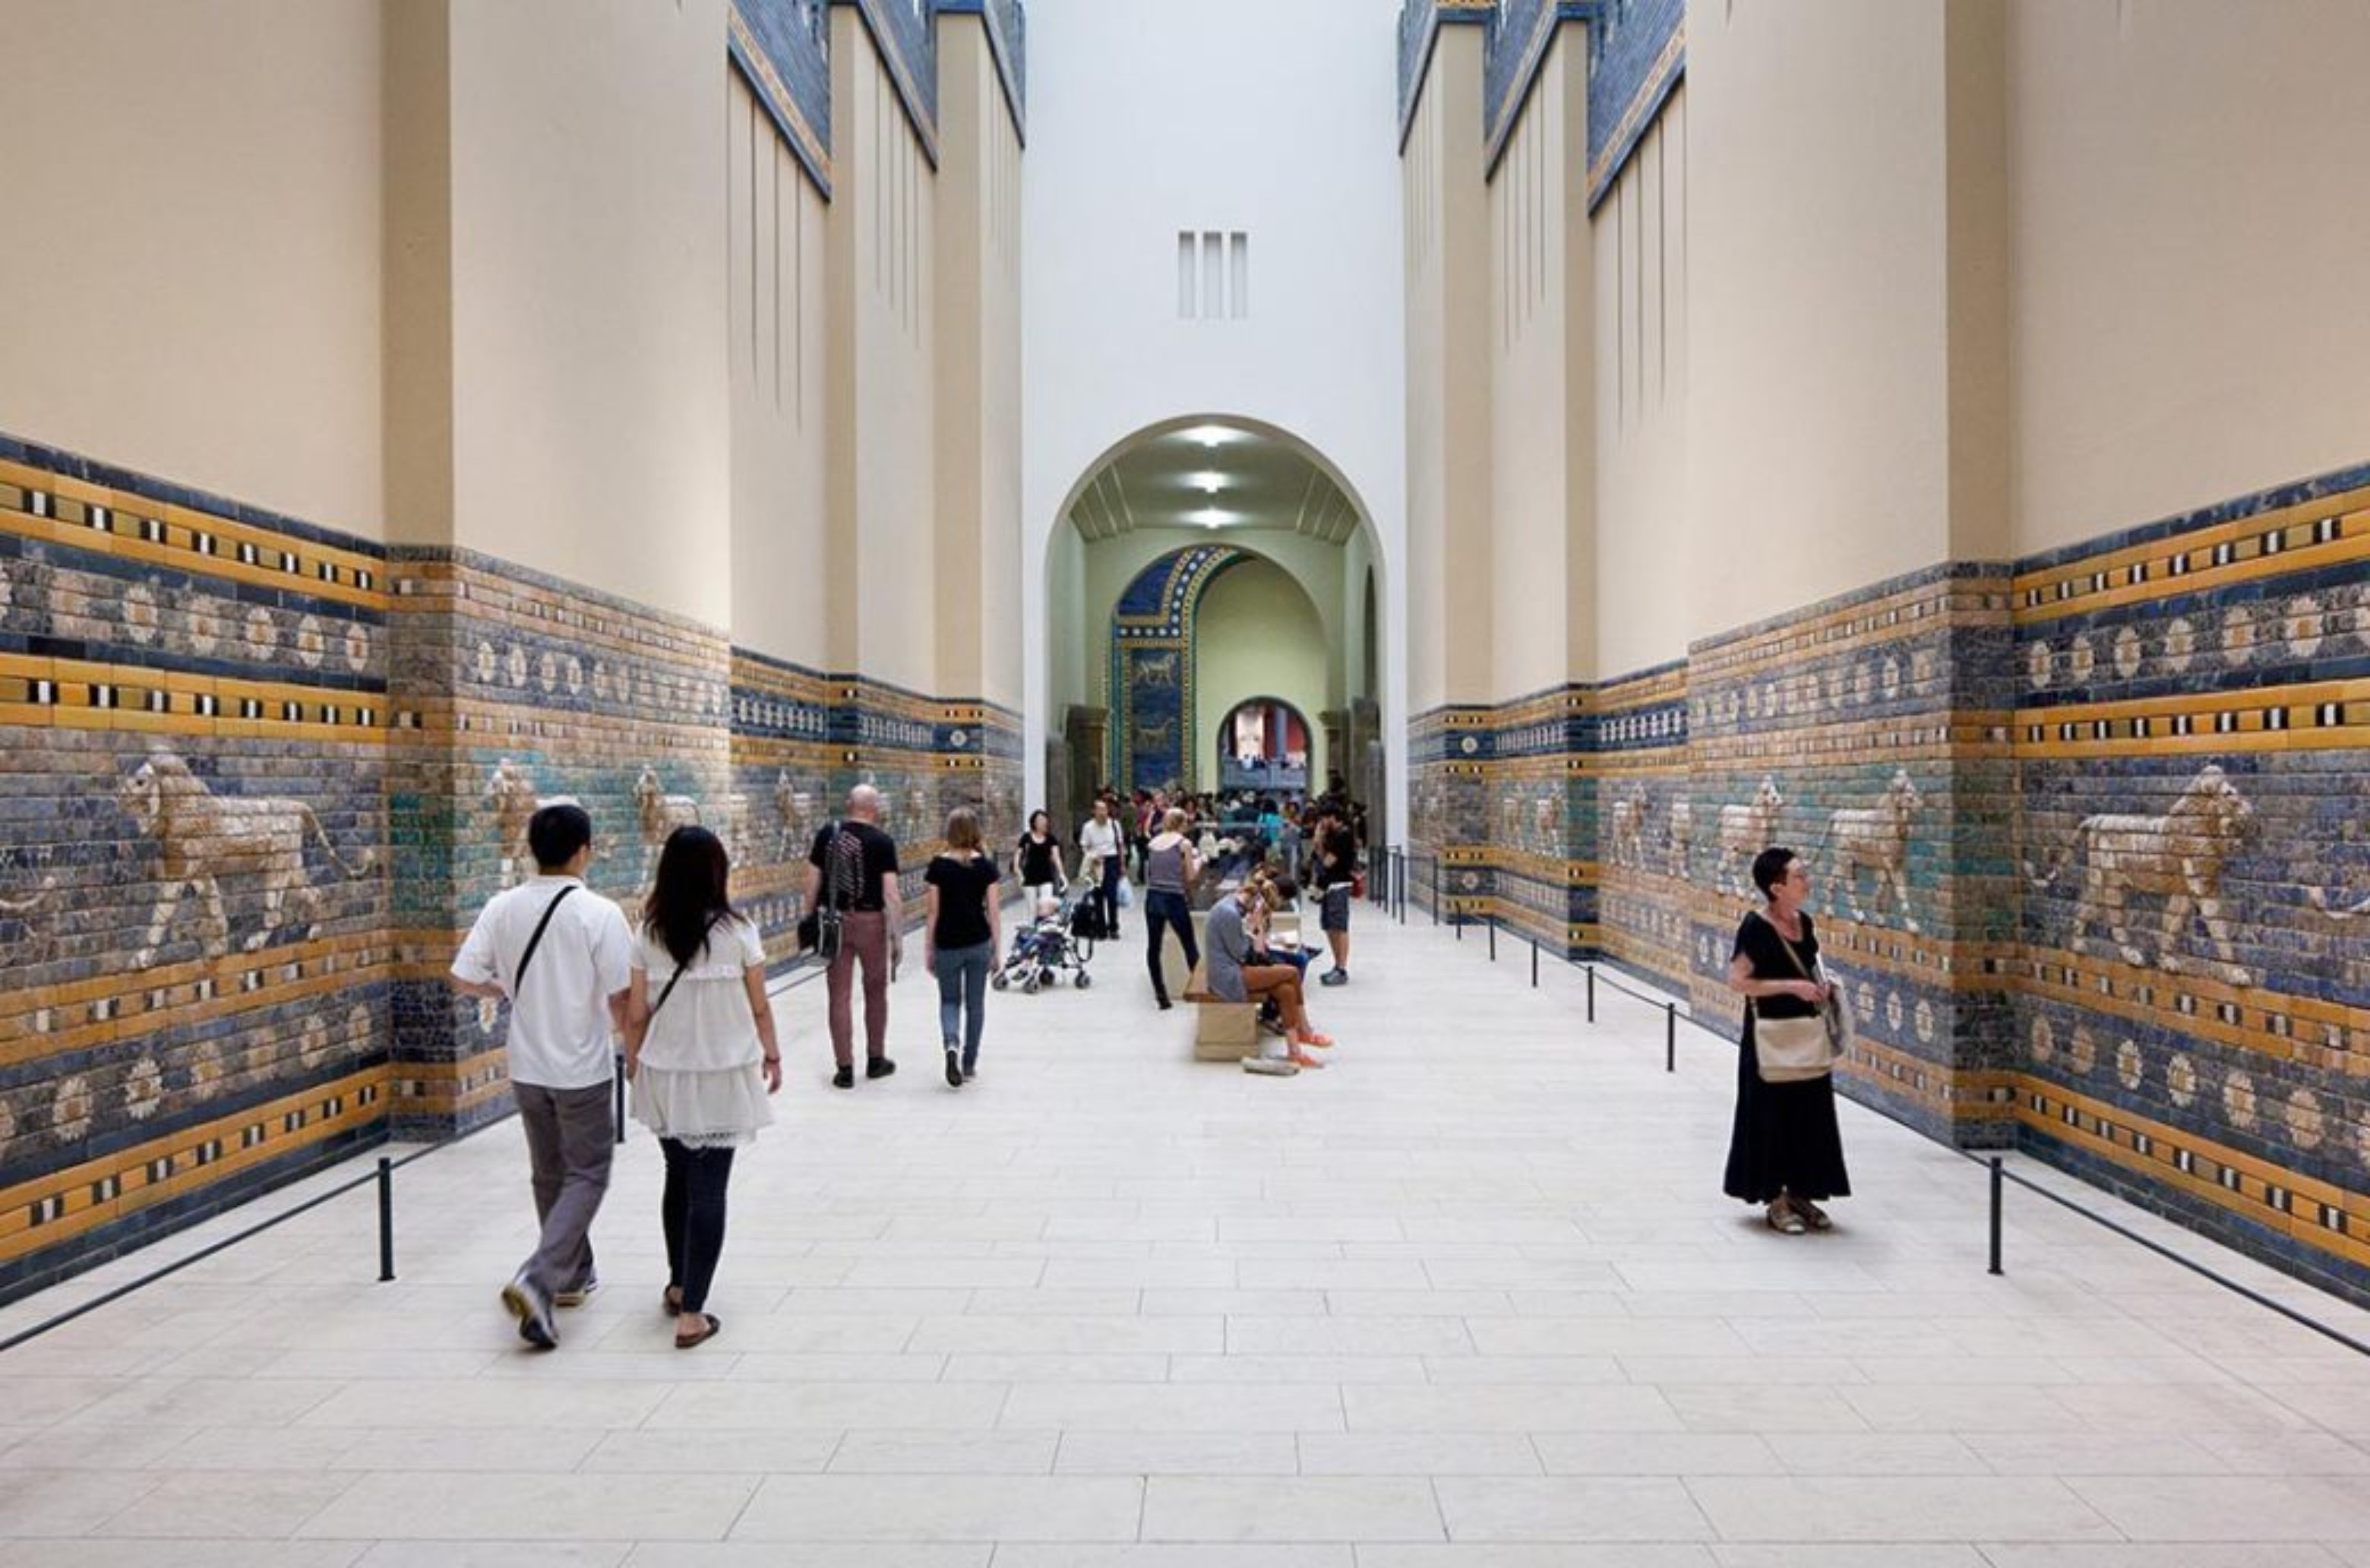 Processional Way in the Pergamonmuseum